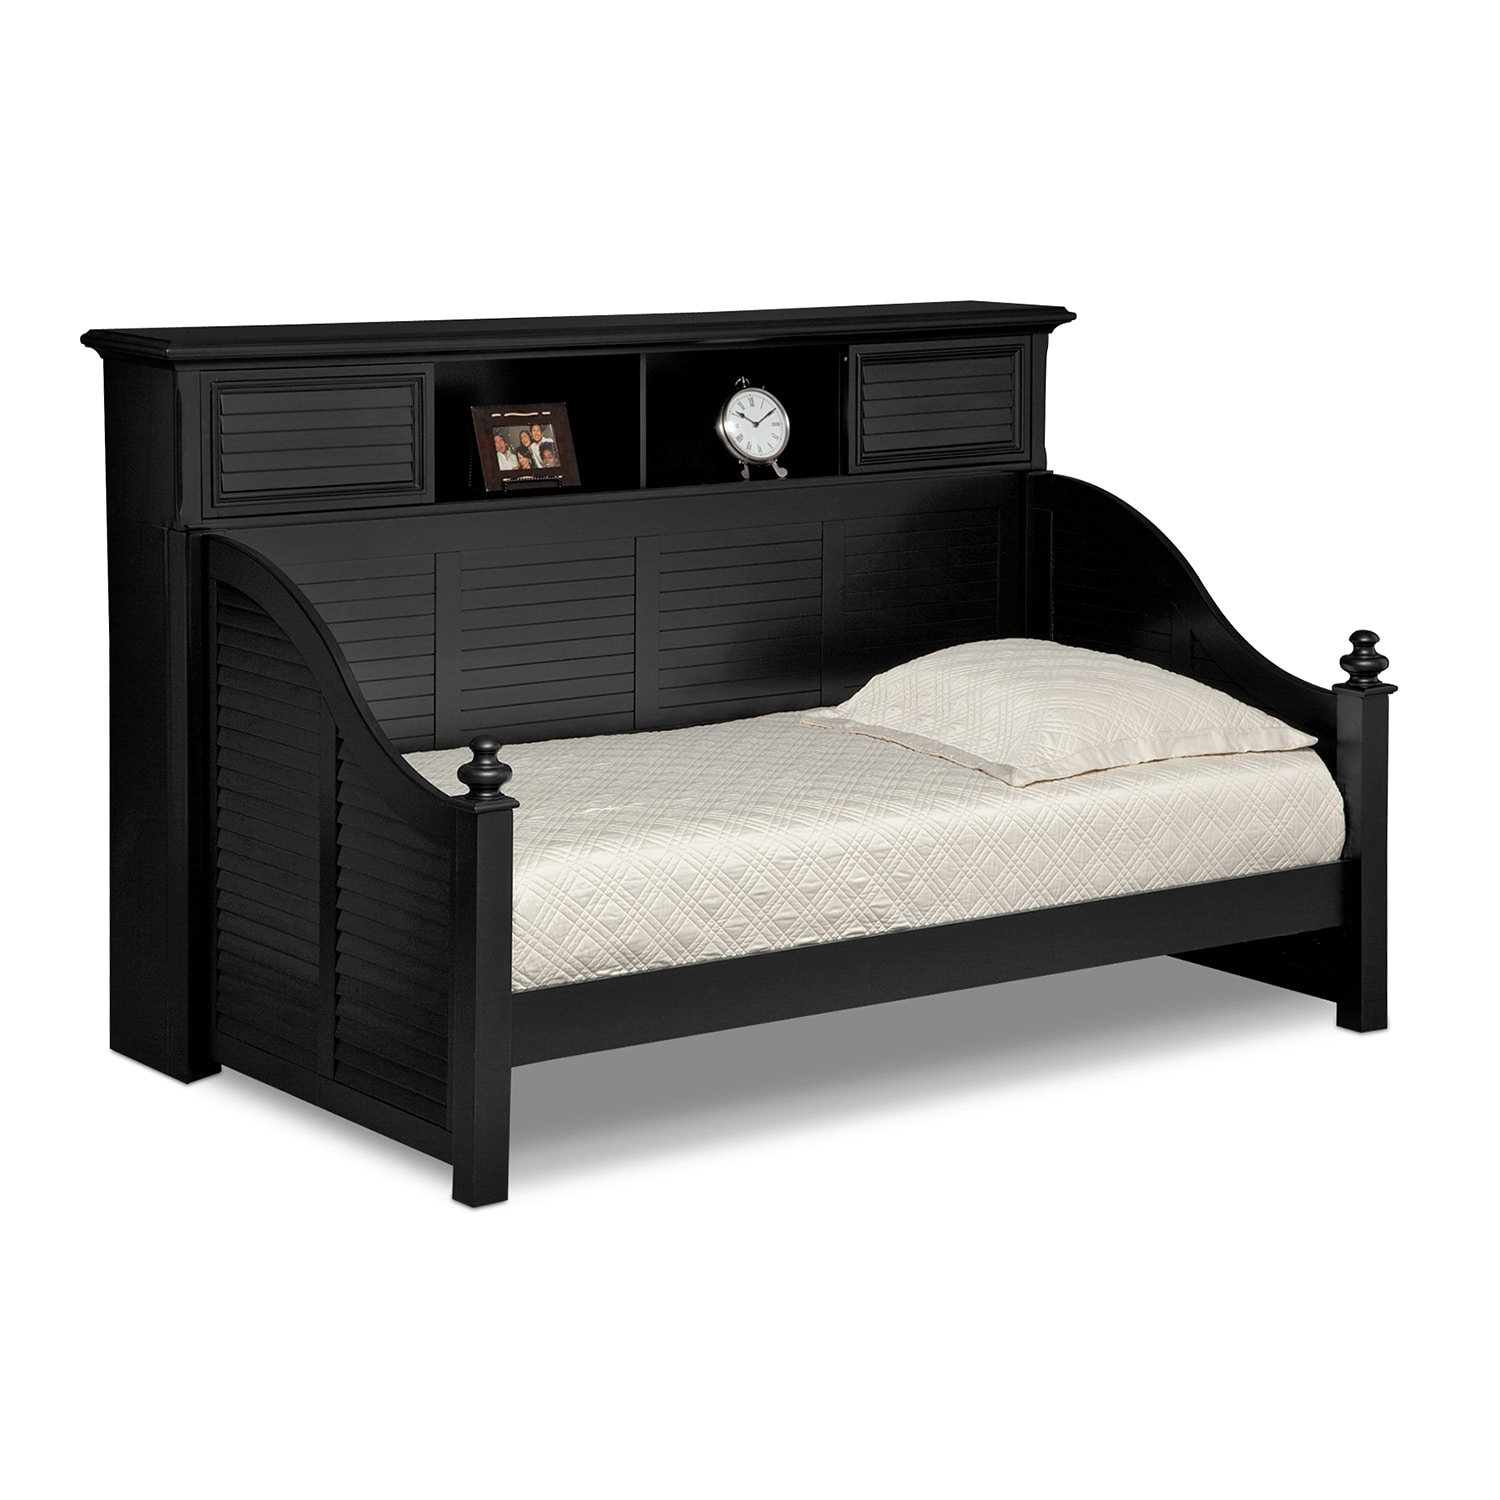 Seaside Bookcase Daybed - Black